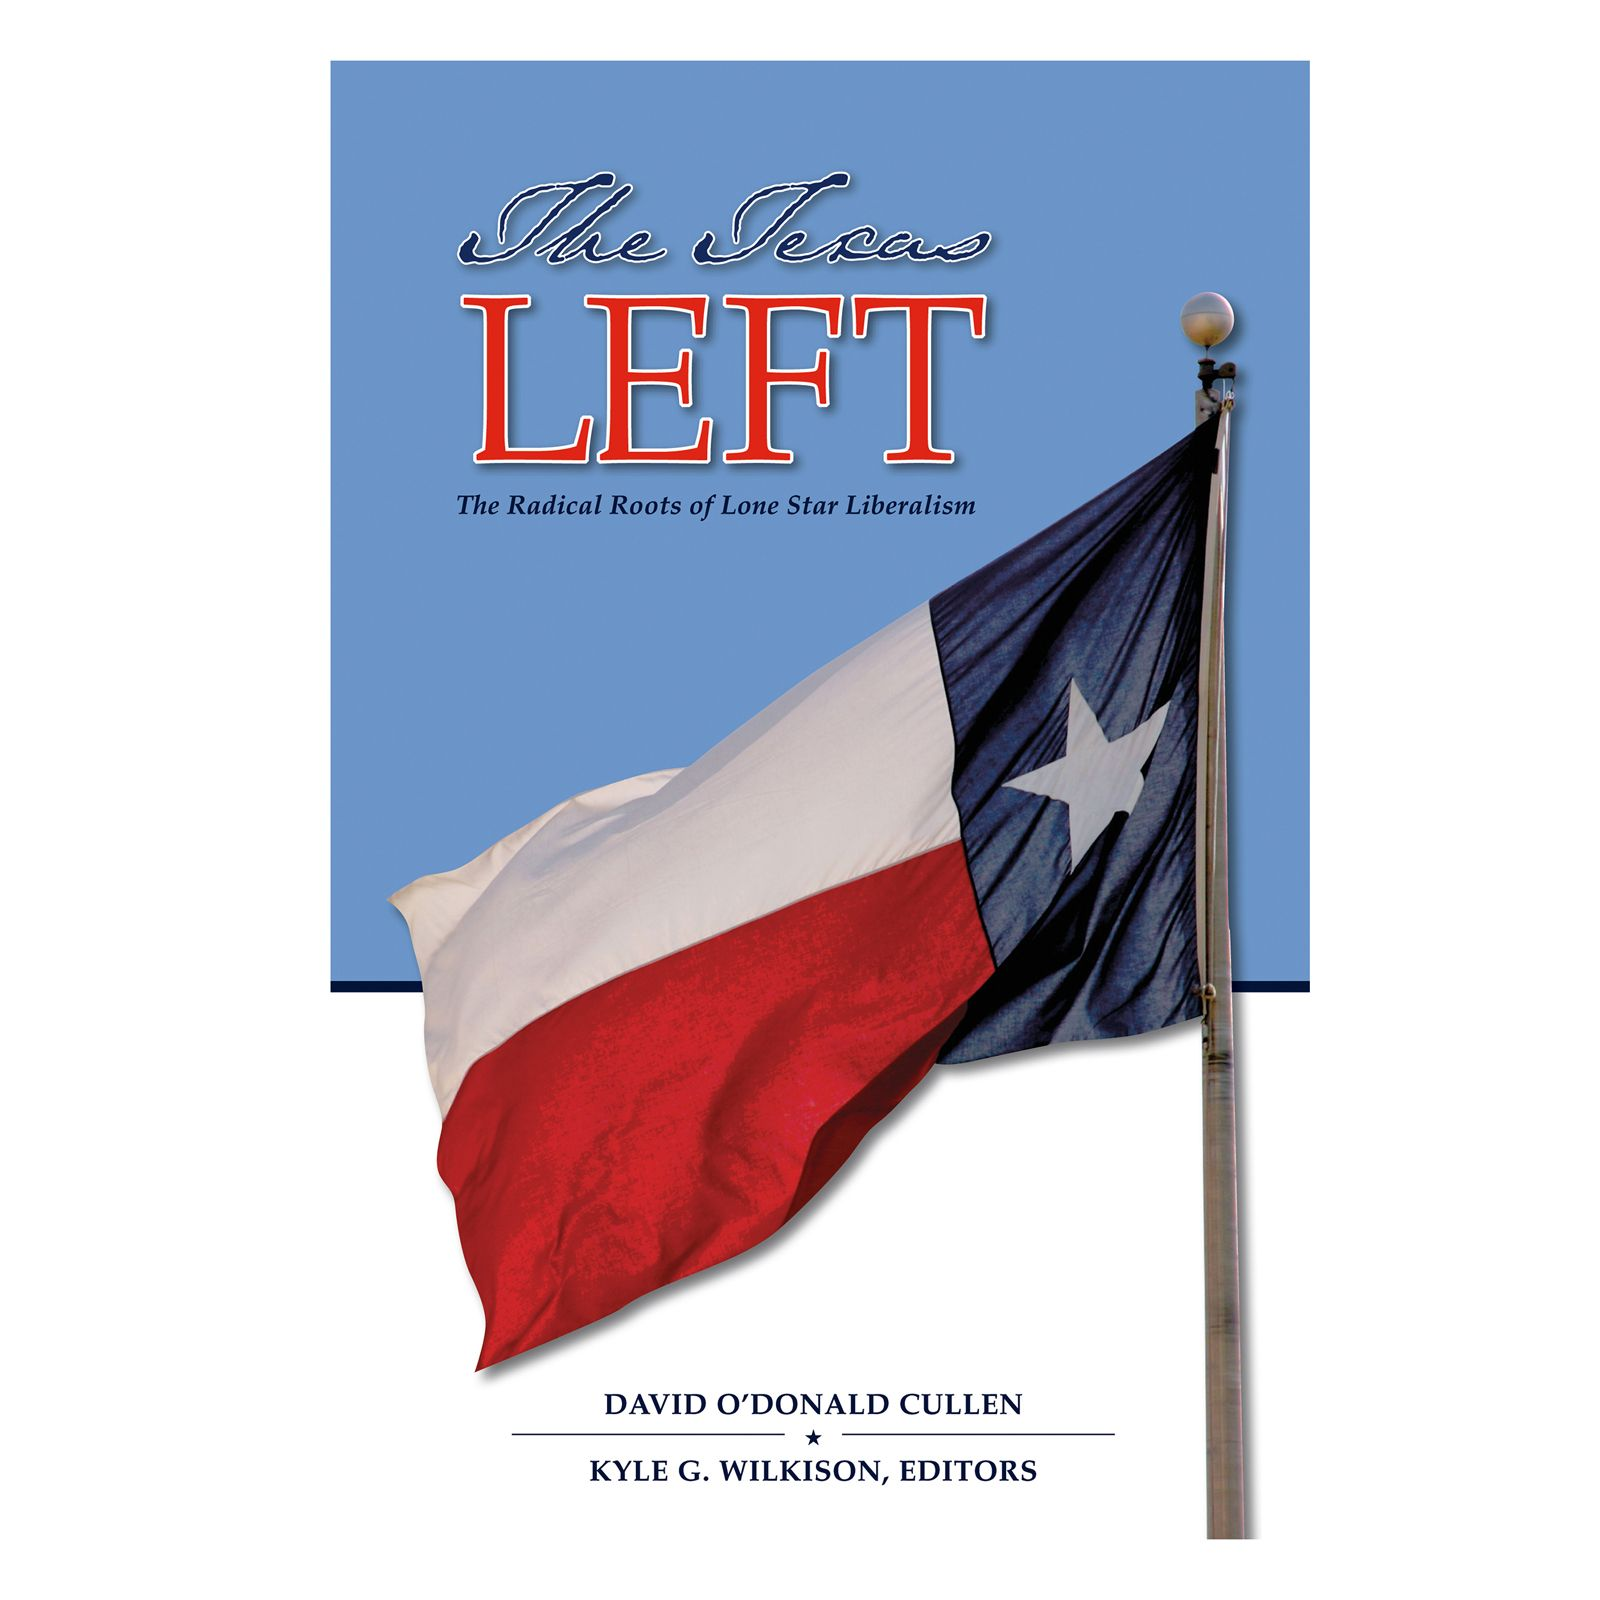 Texas Left: The Radical Roots of Lone Star Liberalism